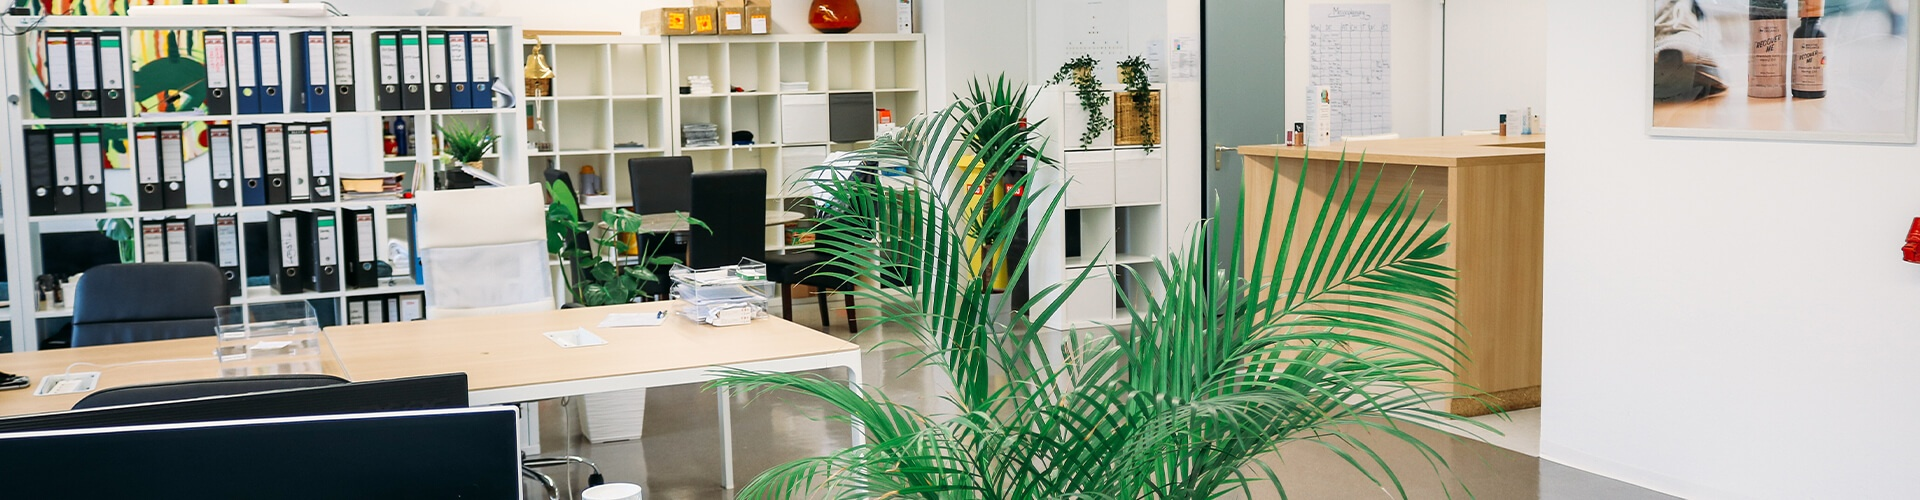 Breathe_Organics-Office_Munich_1920x500